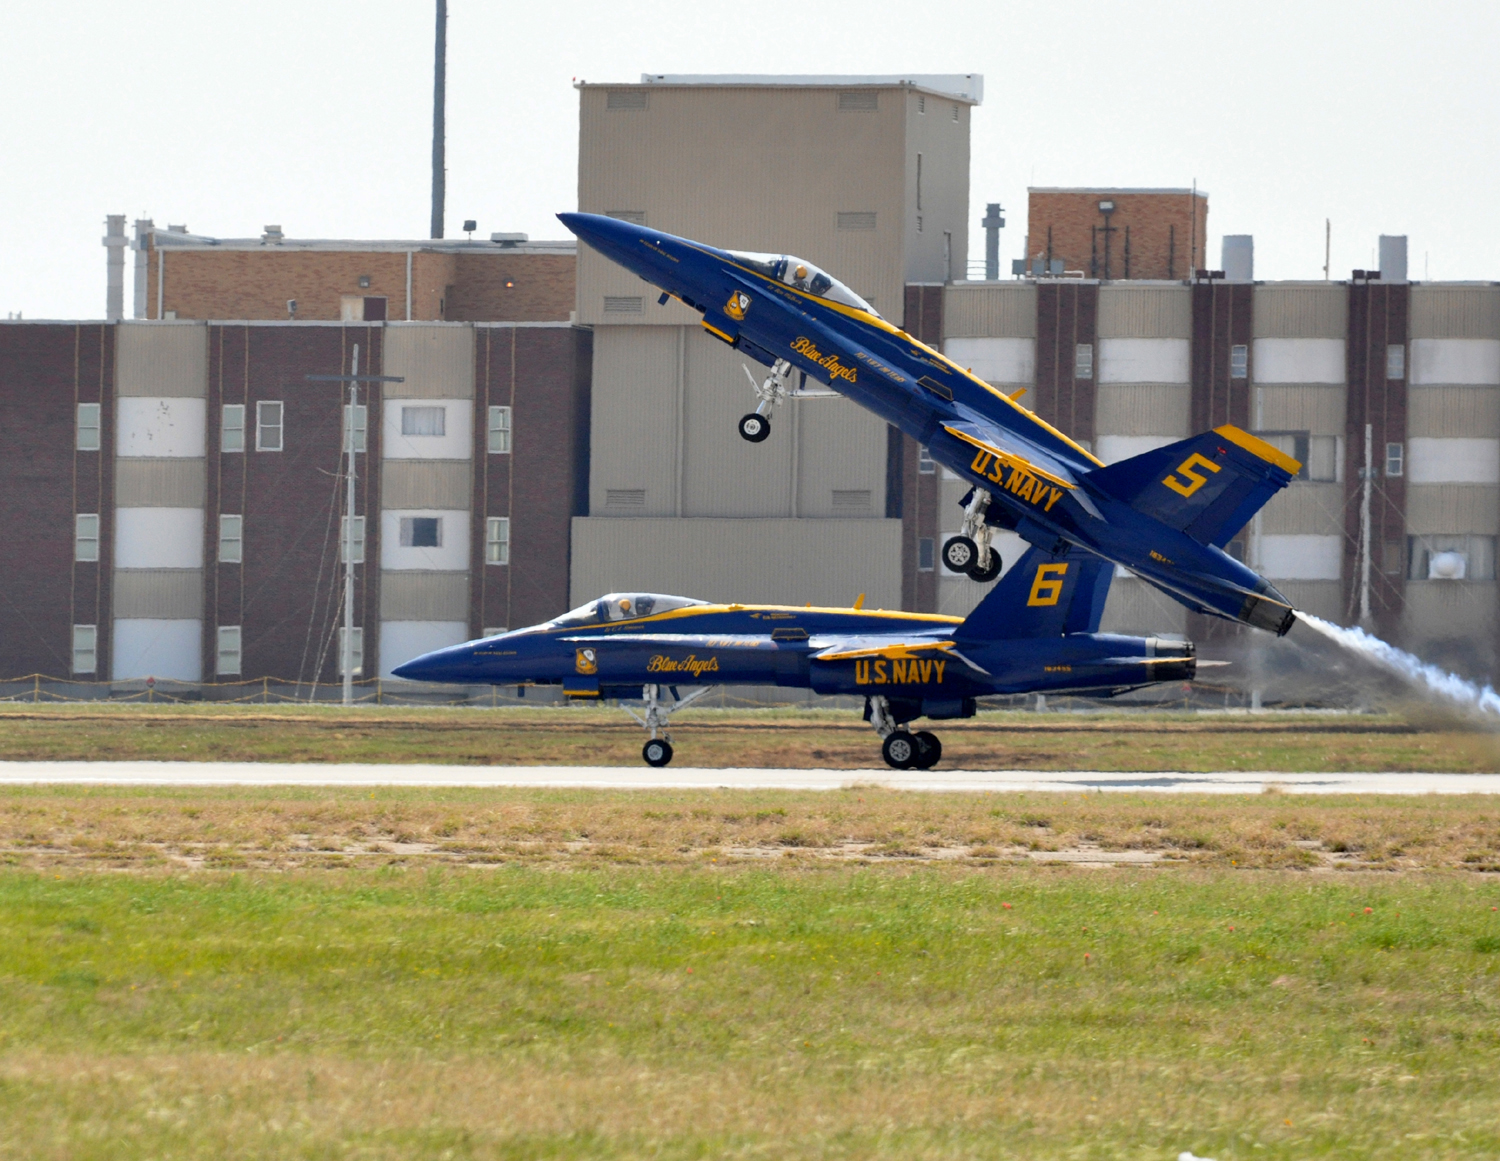 naval air station jrb chat sites Enwiki naval air station joint reserve base new orleans  other sites (1 entry) edit commonswiki category:naval air station joint reserve base new.